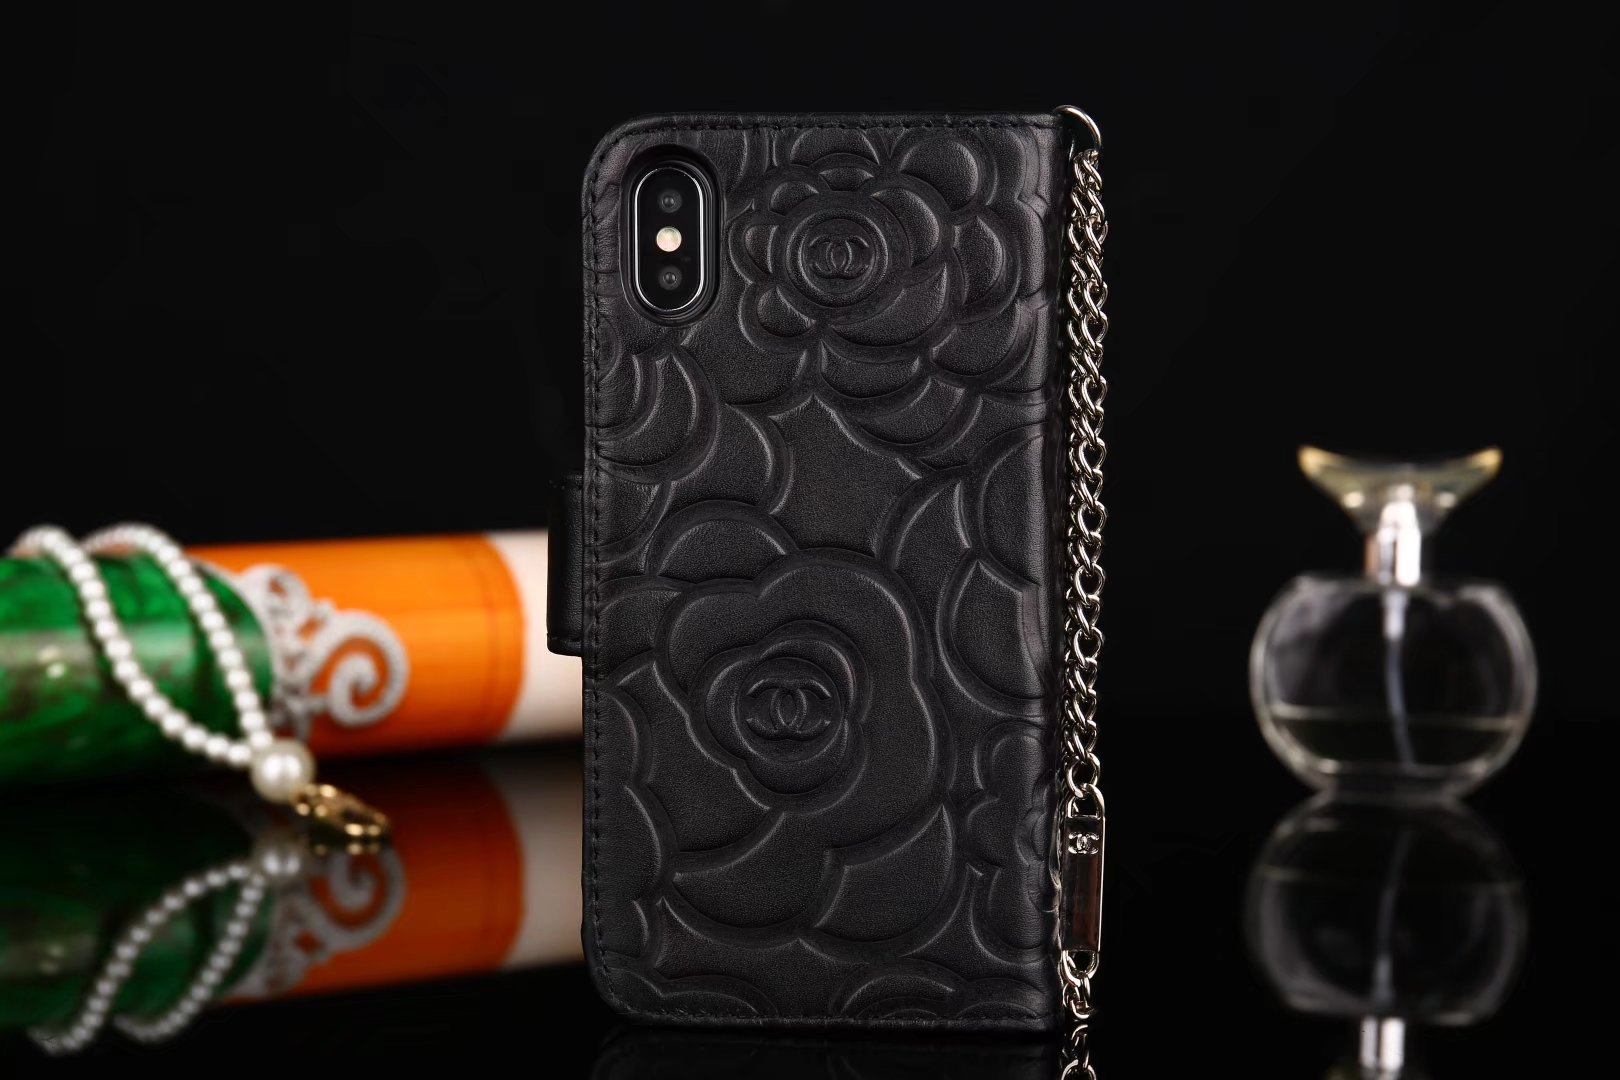 iphone case foto schutzhülle für iphone Chanel iphone X hüllen wo gibt es schöne handyhüllen foto auf handycover iphone größe apple iphone X aX apple hülle iphone X billig iphone X